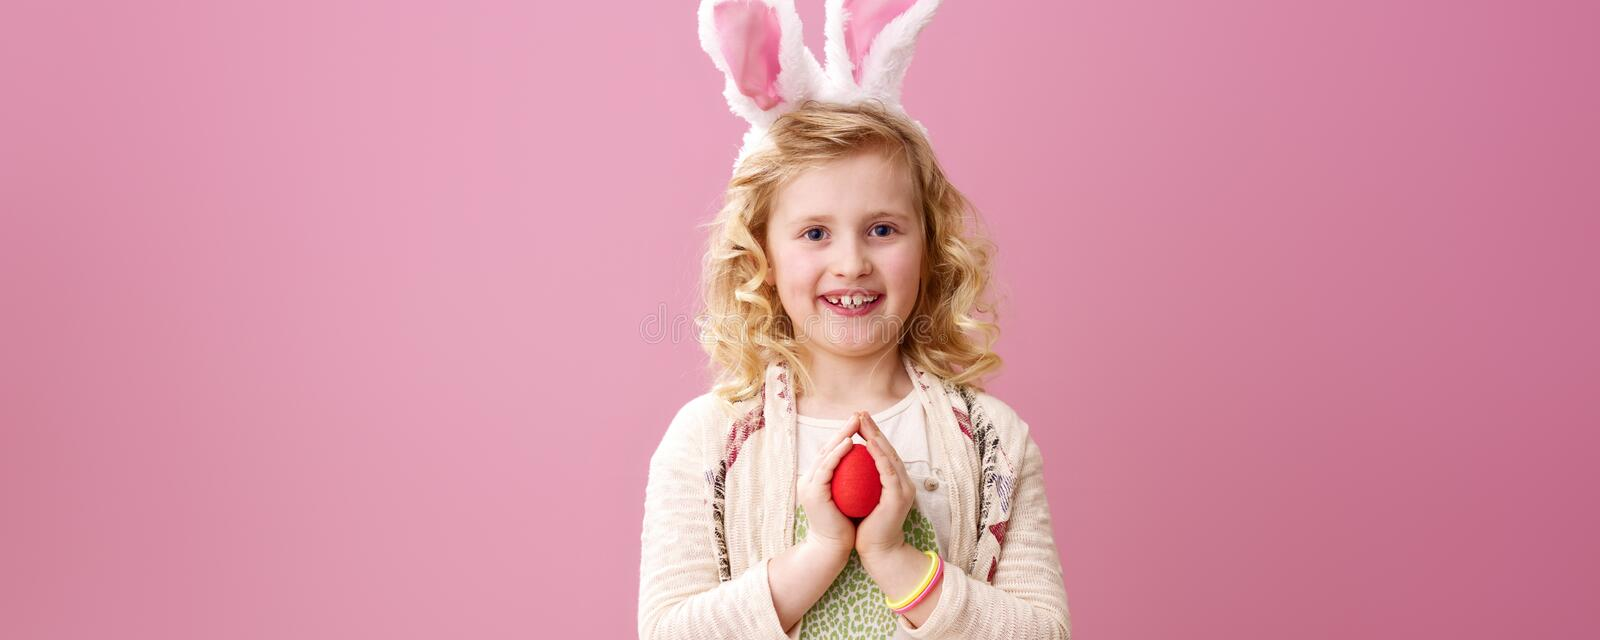 Happy stylish child on pink background with red Easter egg stock photos